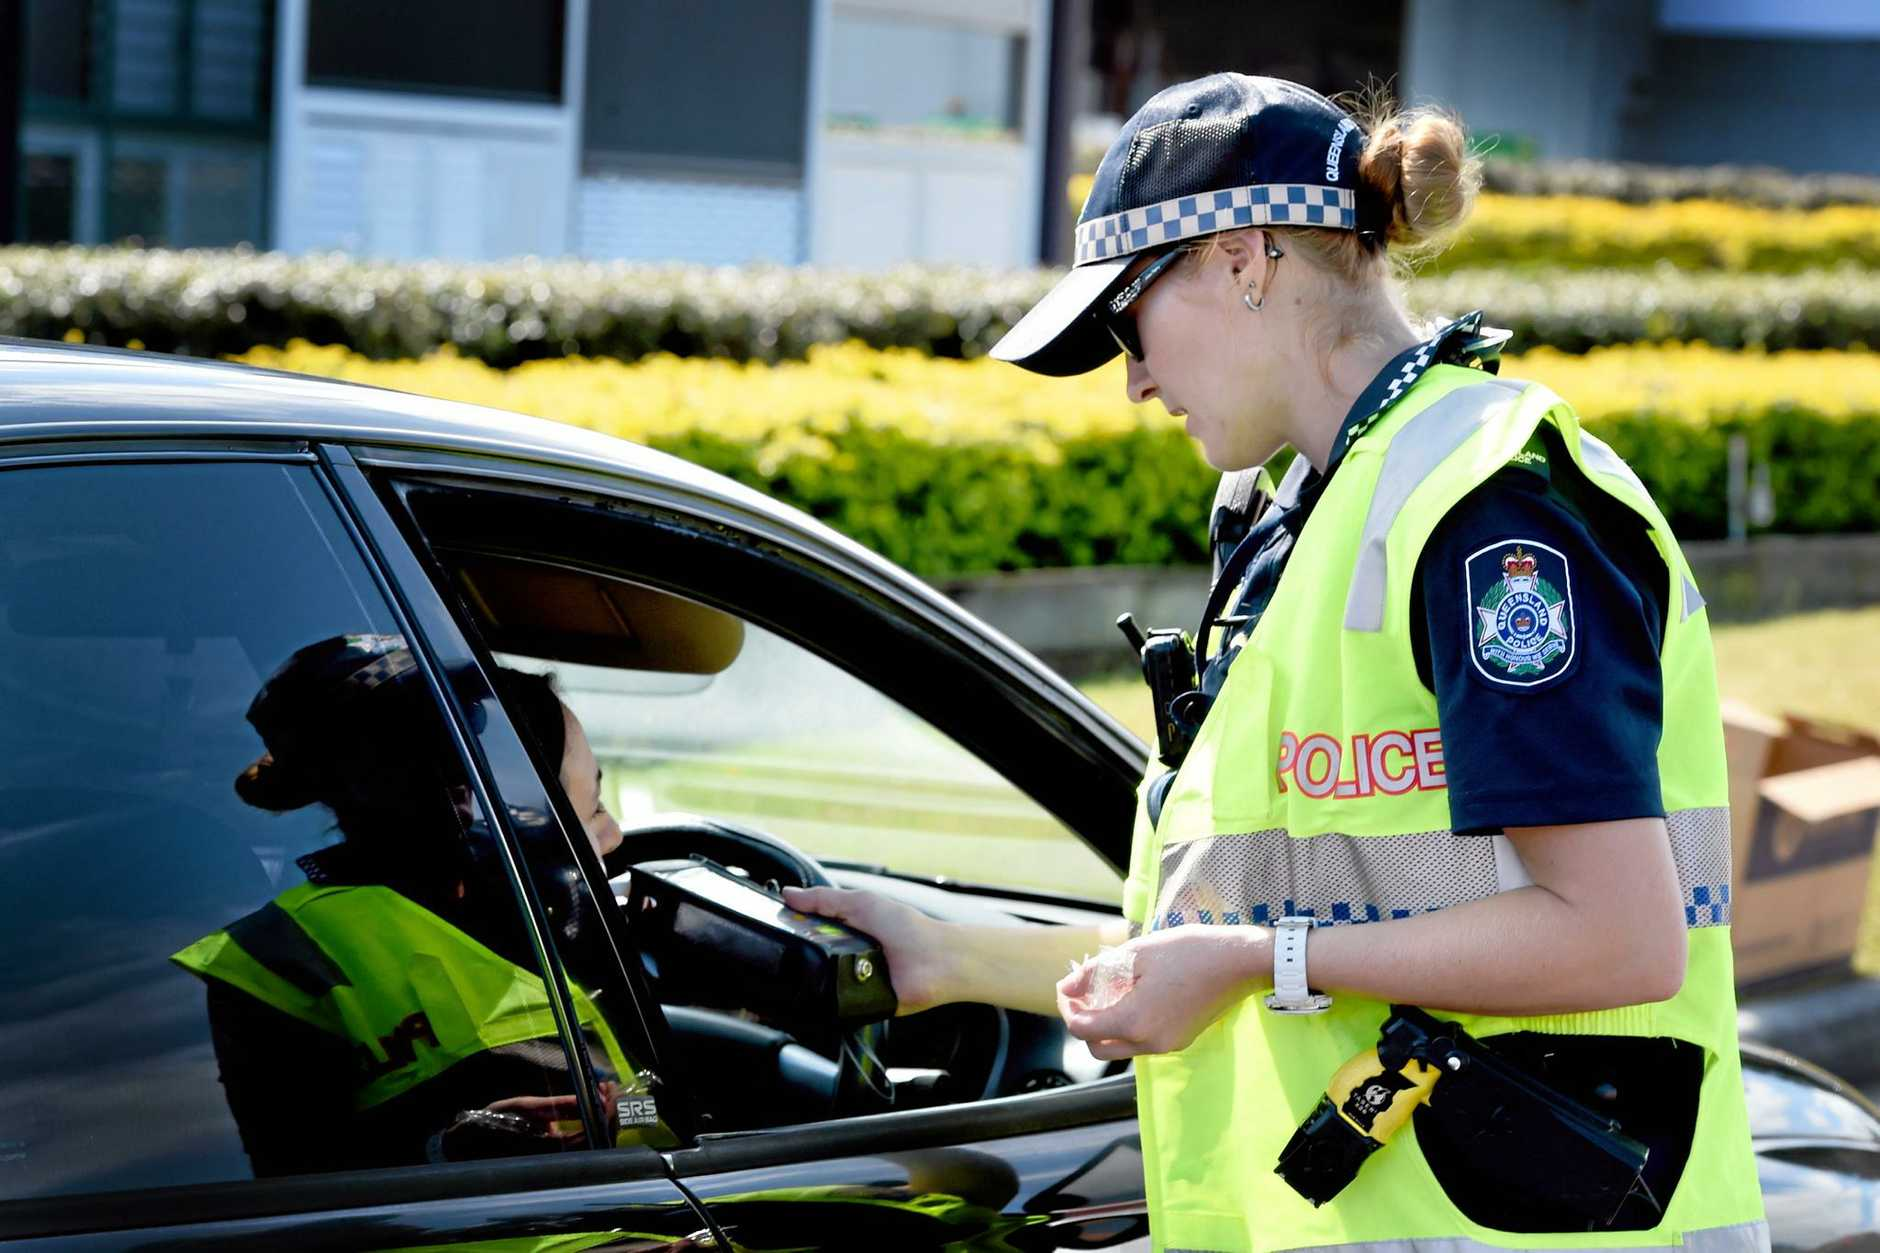 The message to drink drivers seems to be getting through to the drinkers in our community due to the random breath testing being done by our police force, but not drug tests.